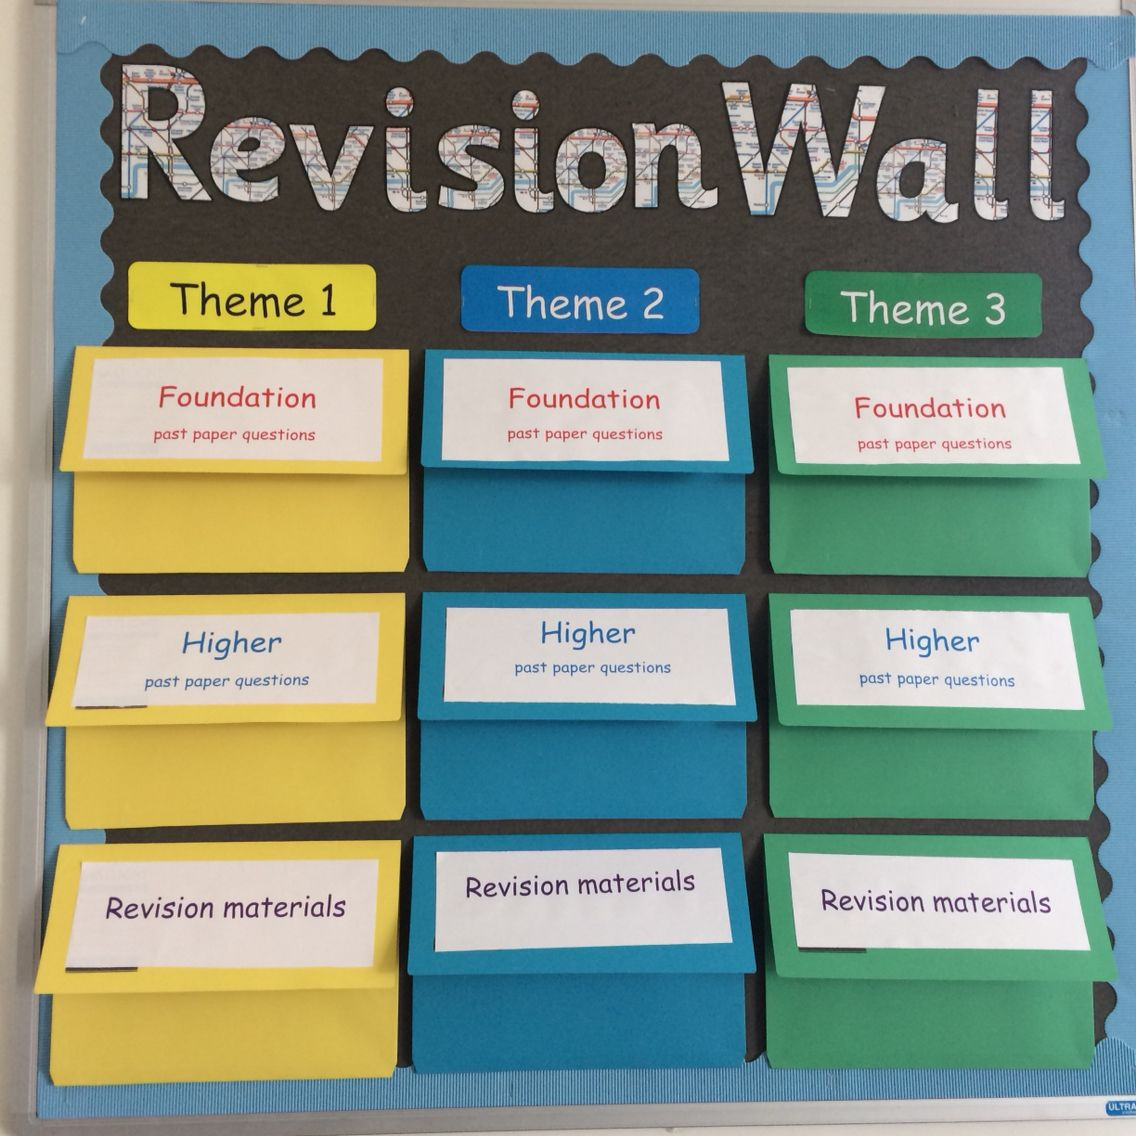 Classroom Display Ideas Ks4 ~ Revision wall for wjec b geography gcse in my classroom